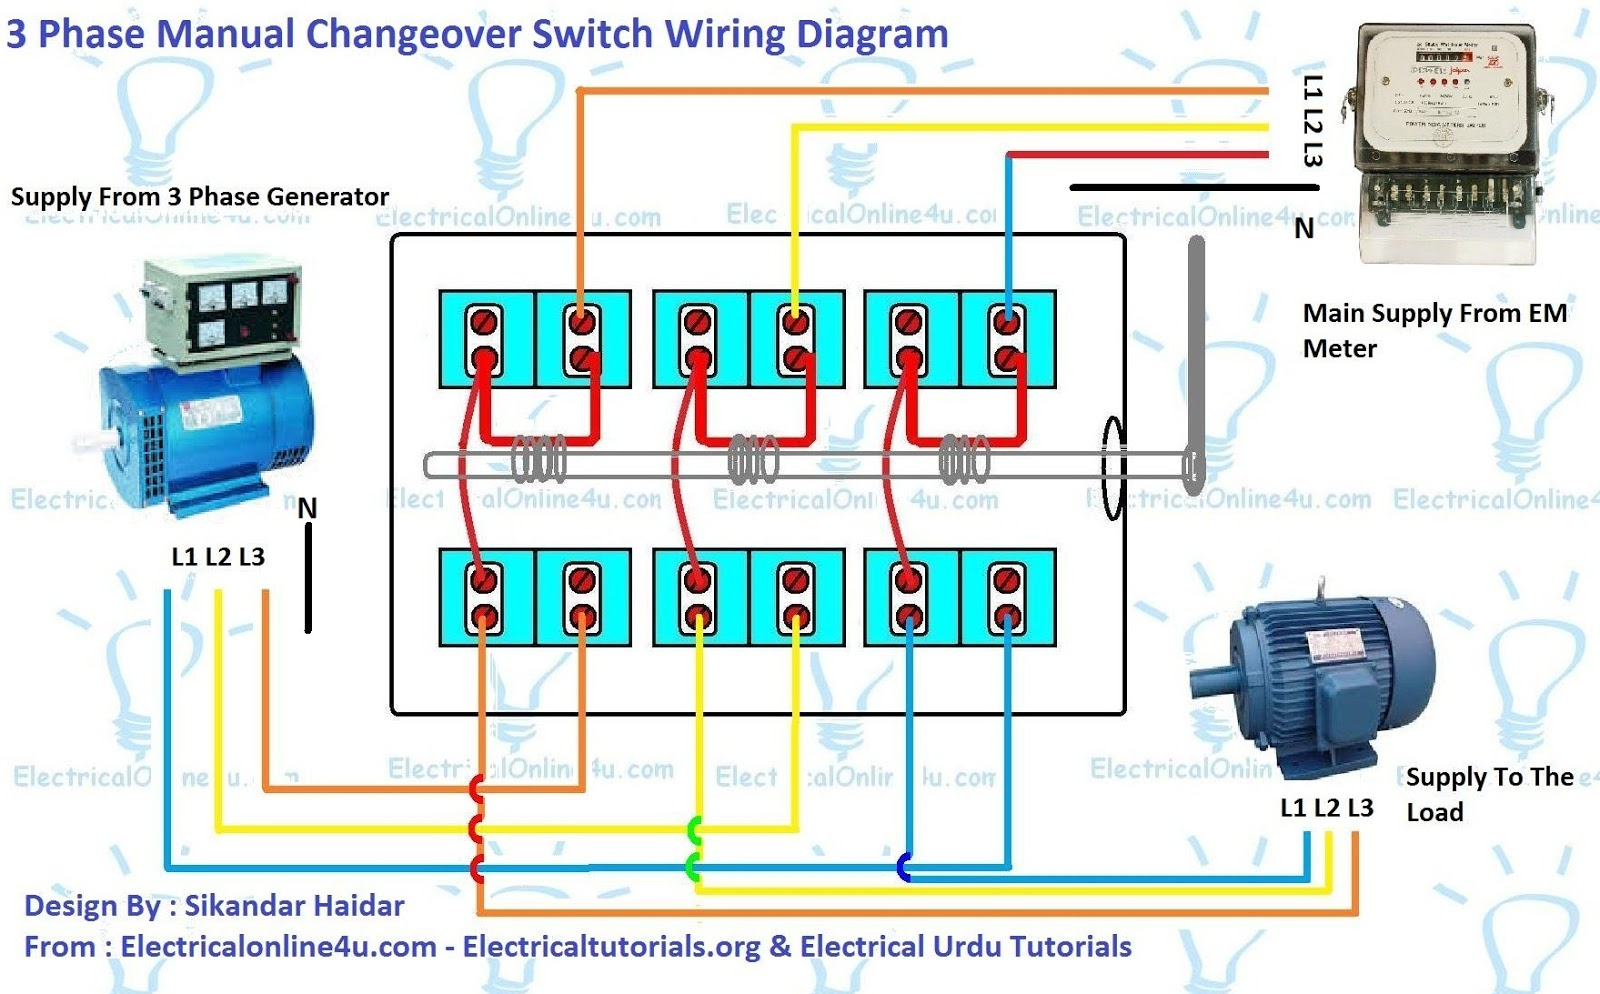 3 Phase Transfer Switch Wiring Opinions About Diagram Automatic Diagramautomatic Manual Changeover For Generator Electrical Online 4u Schematic